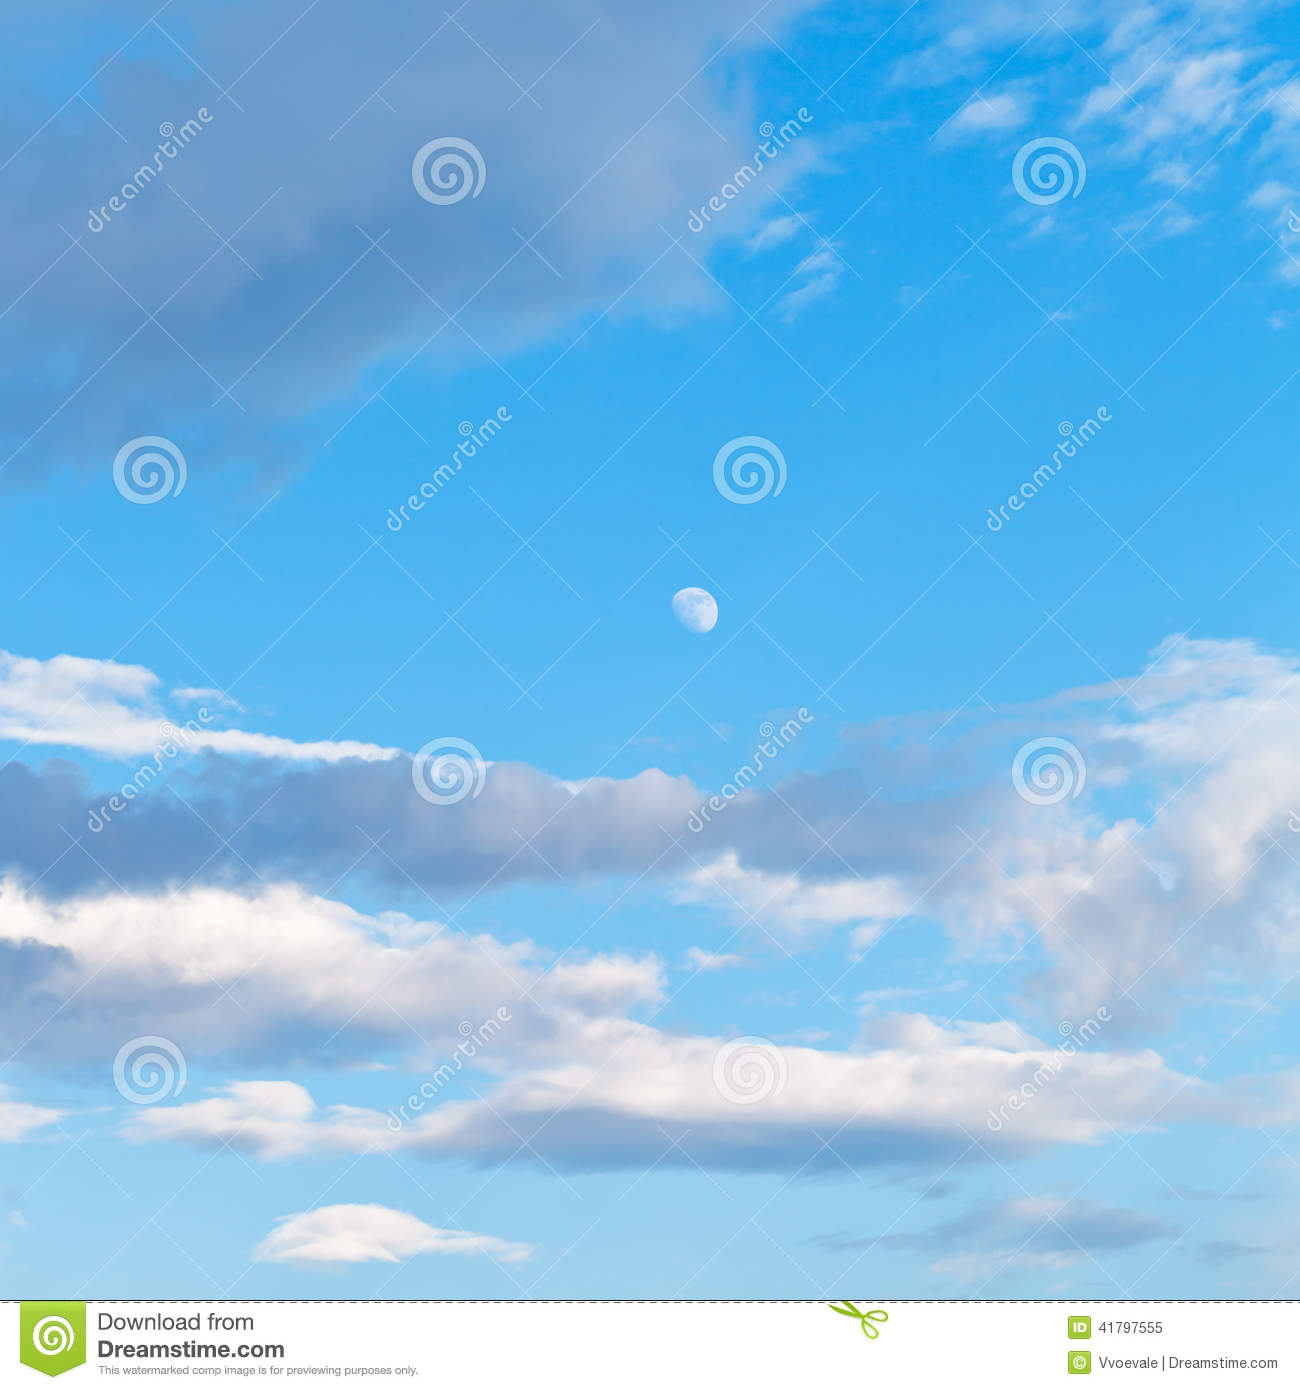 the moon in the evening sky stock image cartoondealer